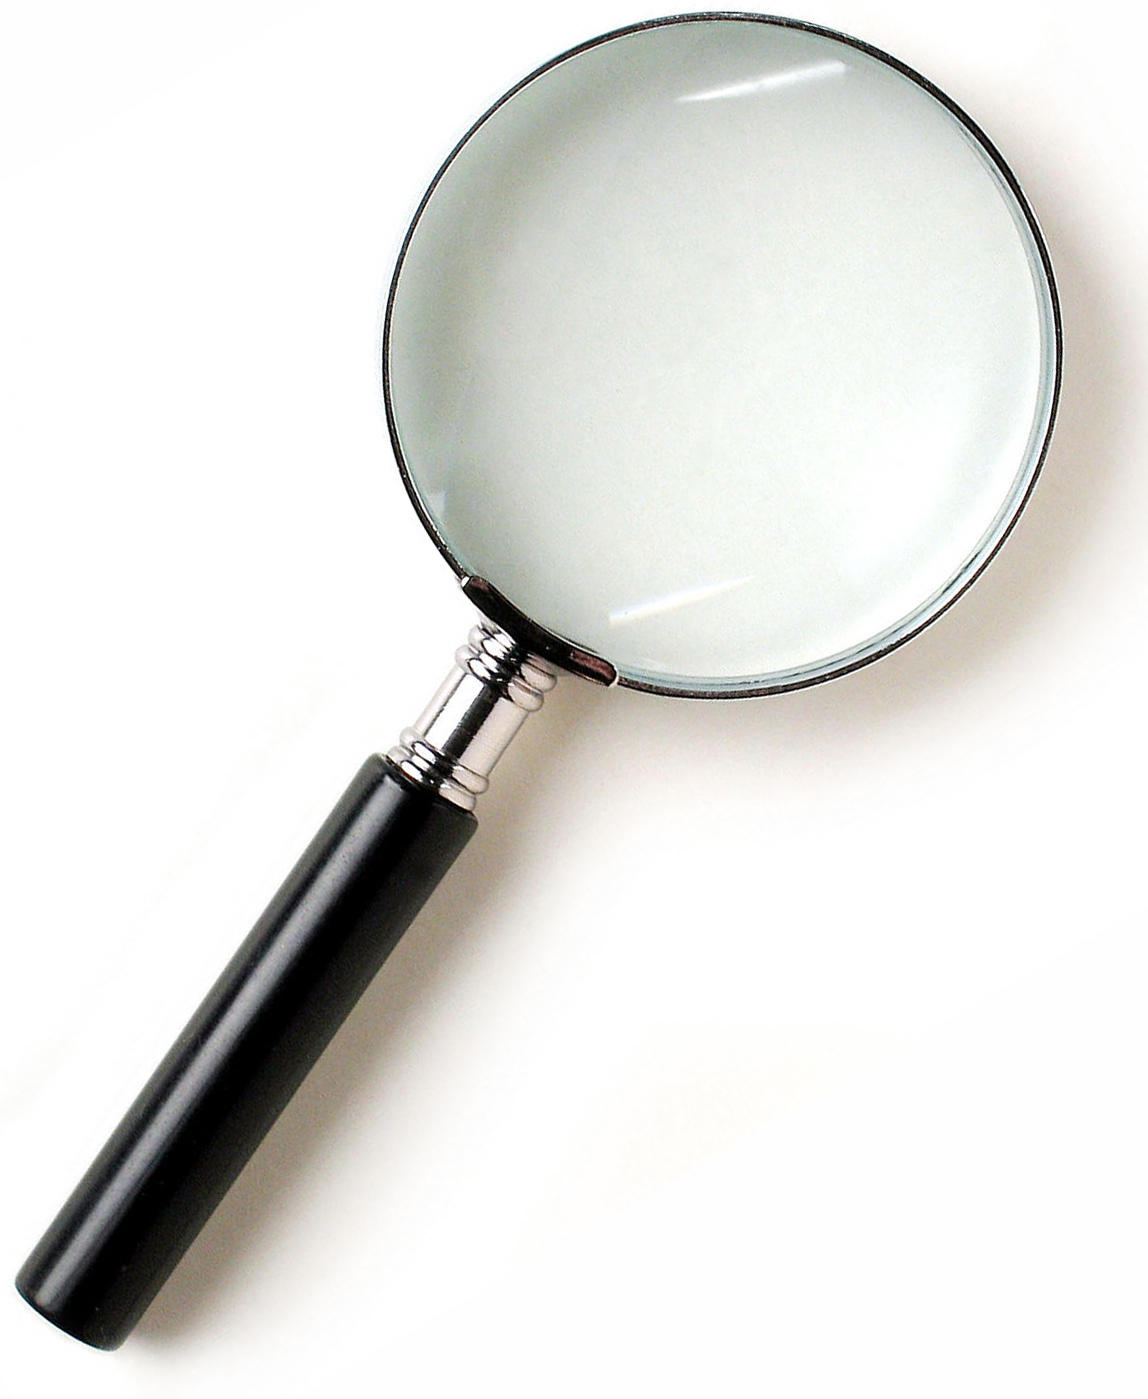 Magnifying glass | Know Your Meme